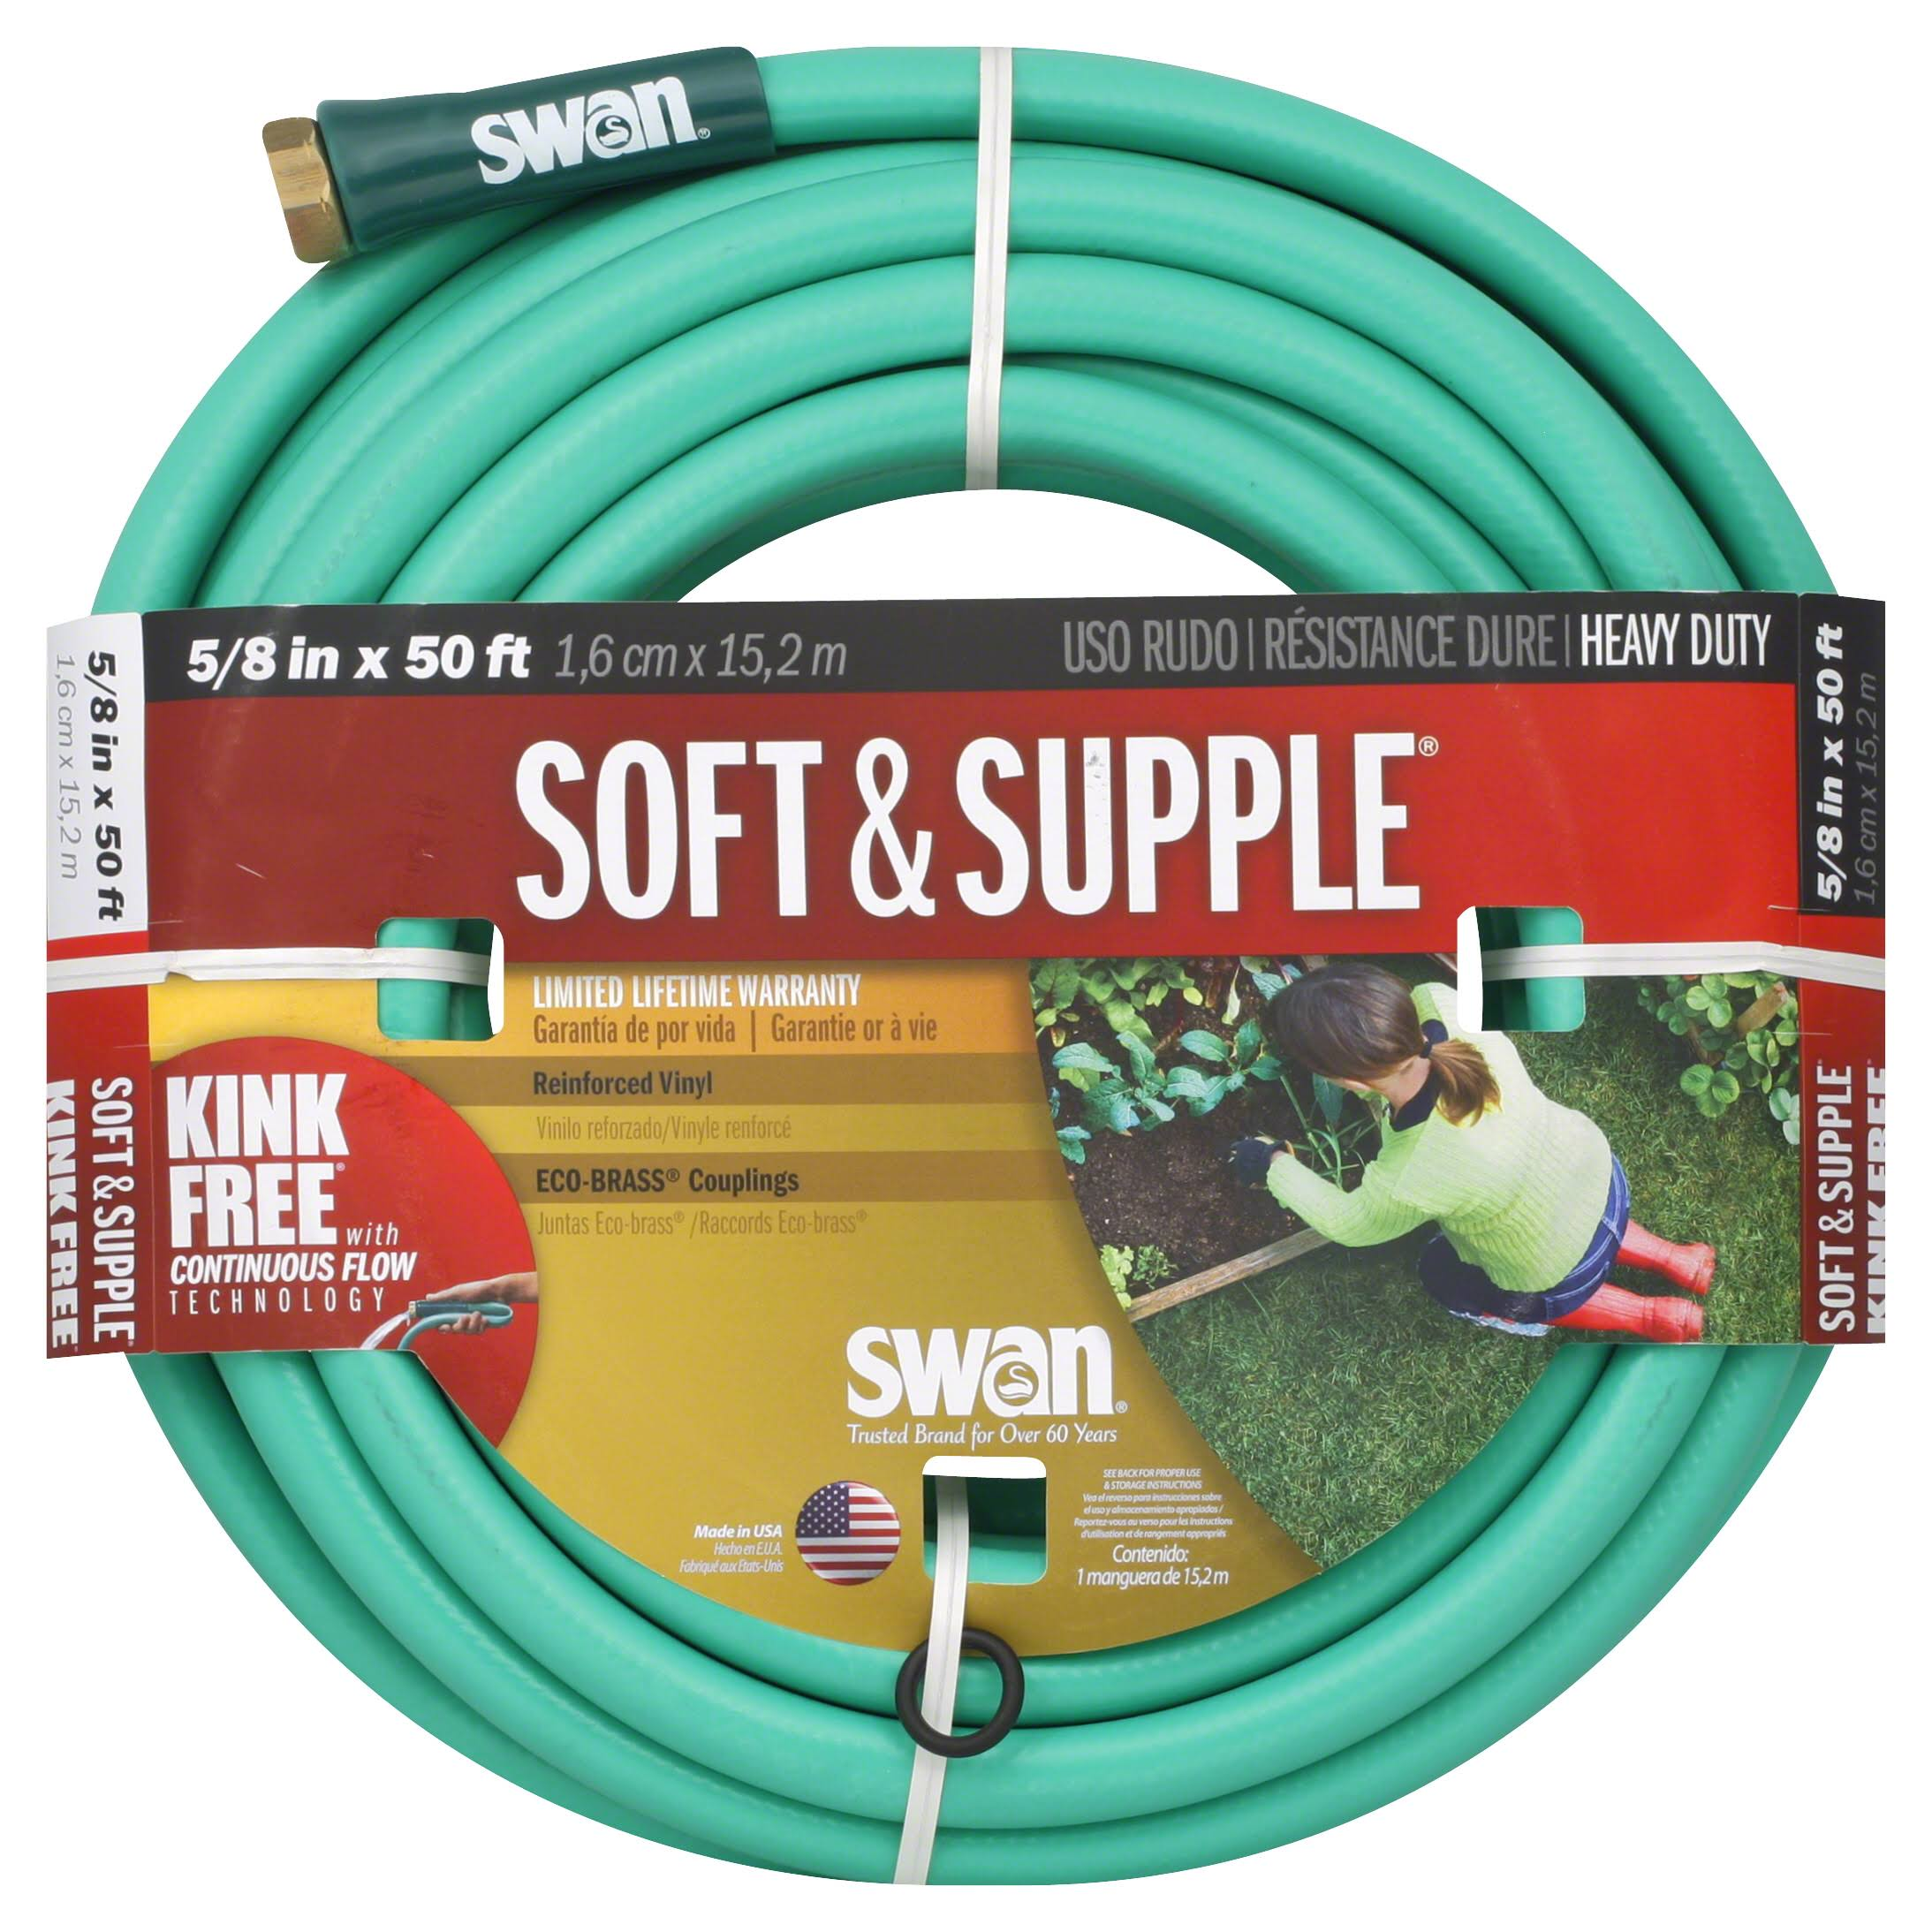 Colorite-Swan Soft & Supple Garden Hose - 1.6cm x 15.2m